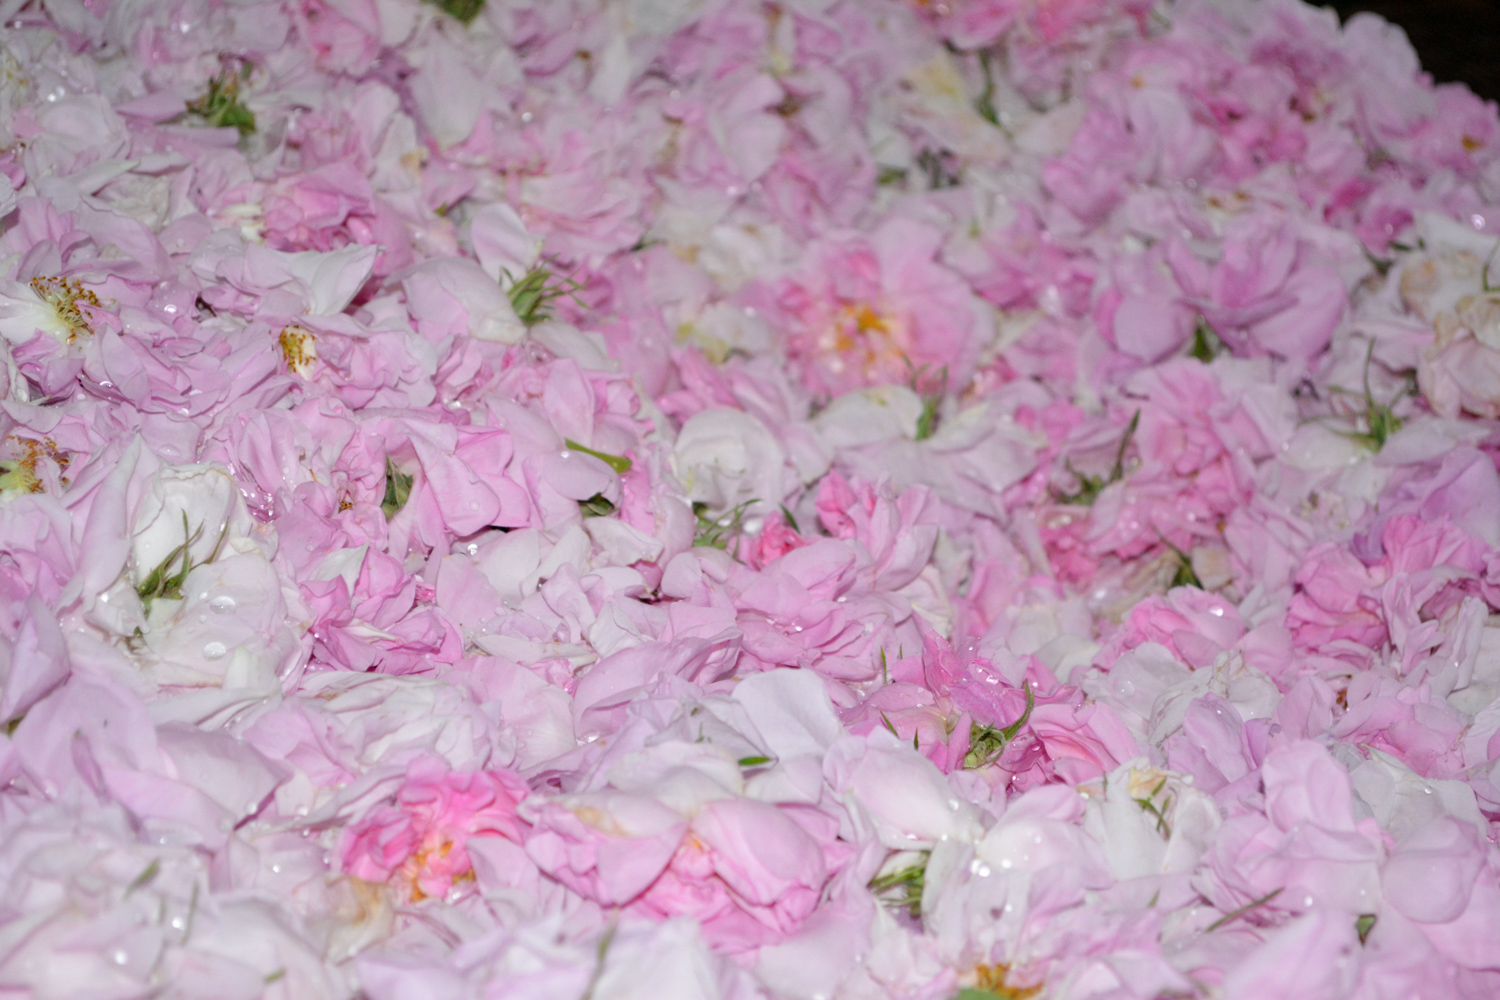 A bed of roses.